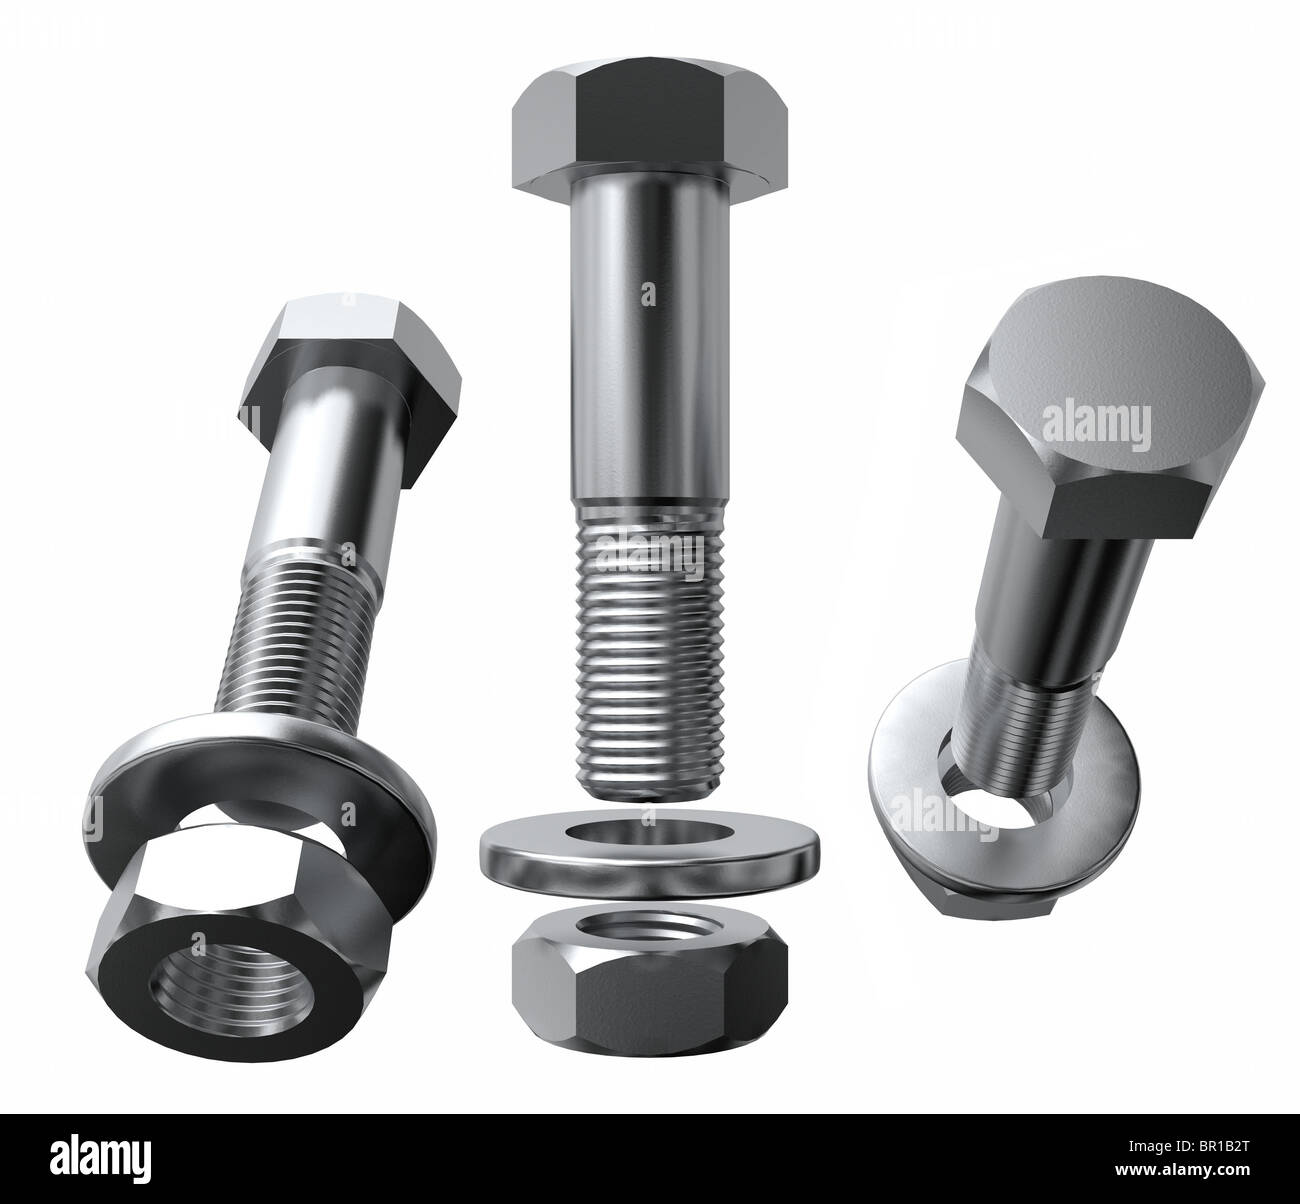 A set of bolts with washers and nuts in an exploded views from different angles. Isolated on white - Stock Image